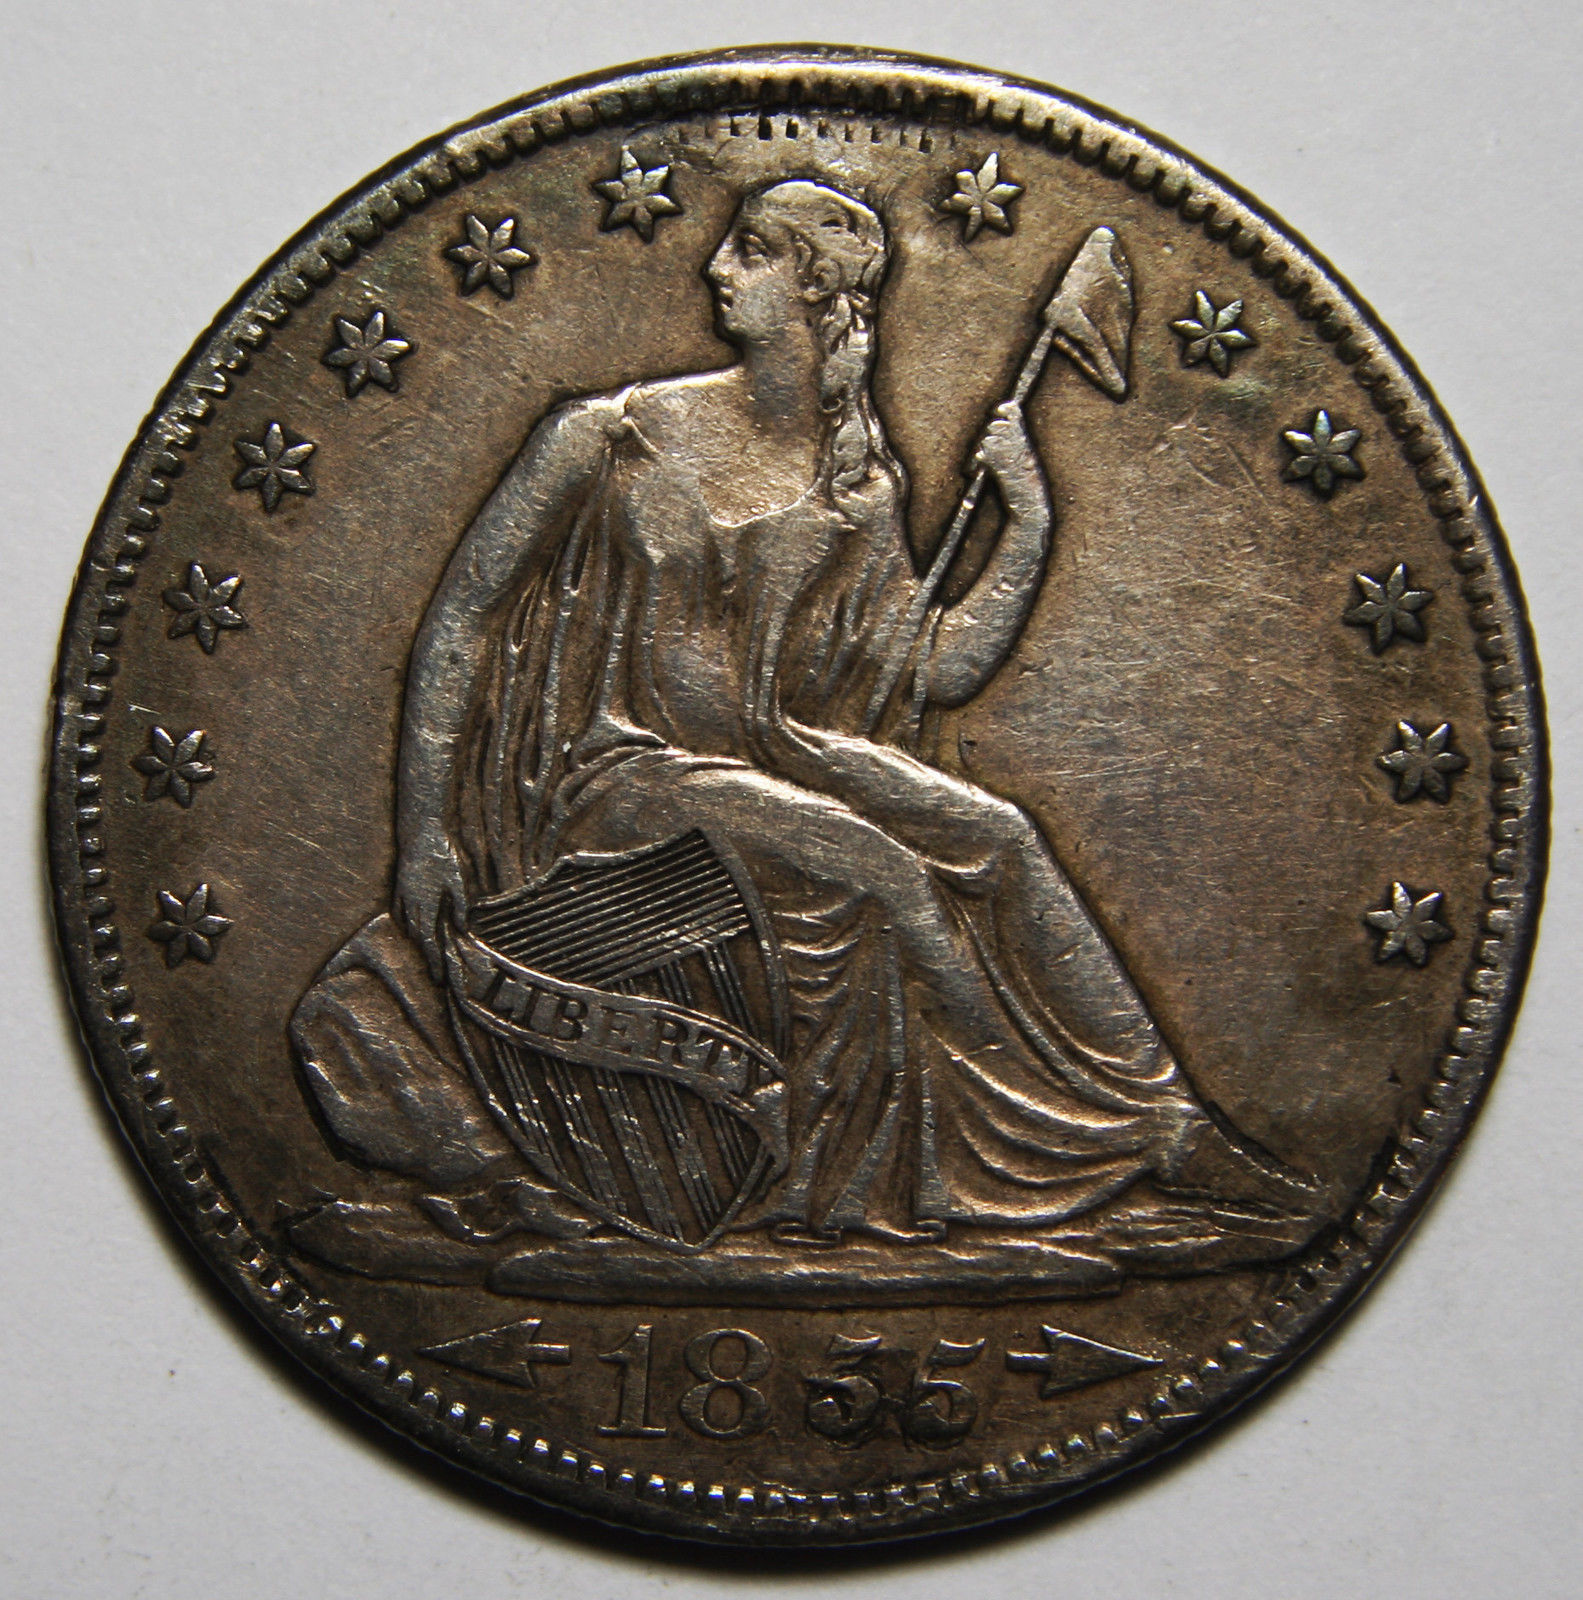 1855S Seated Silver Liberty Half Dollar 50¢ Coin Lot# MZ 3915